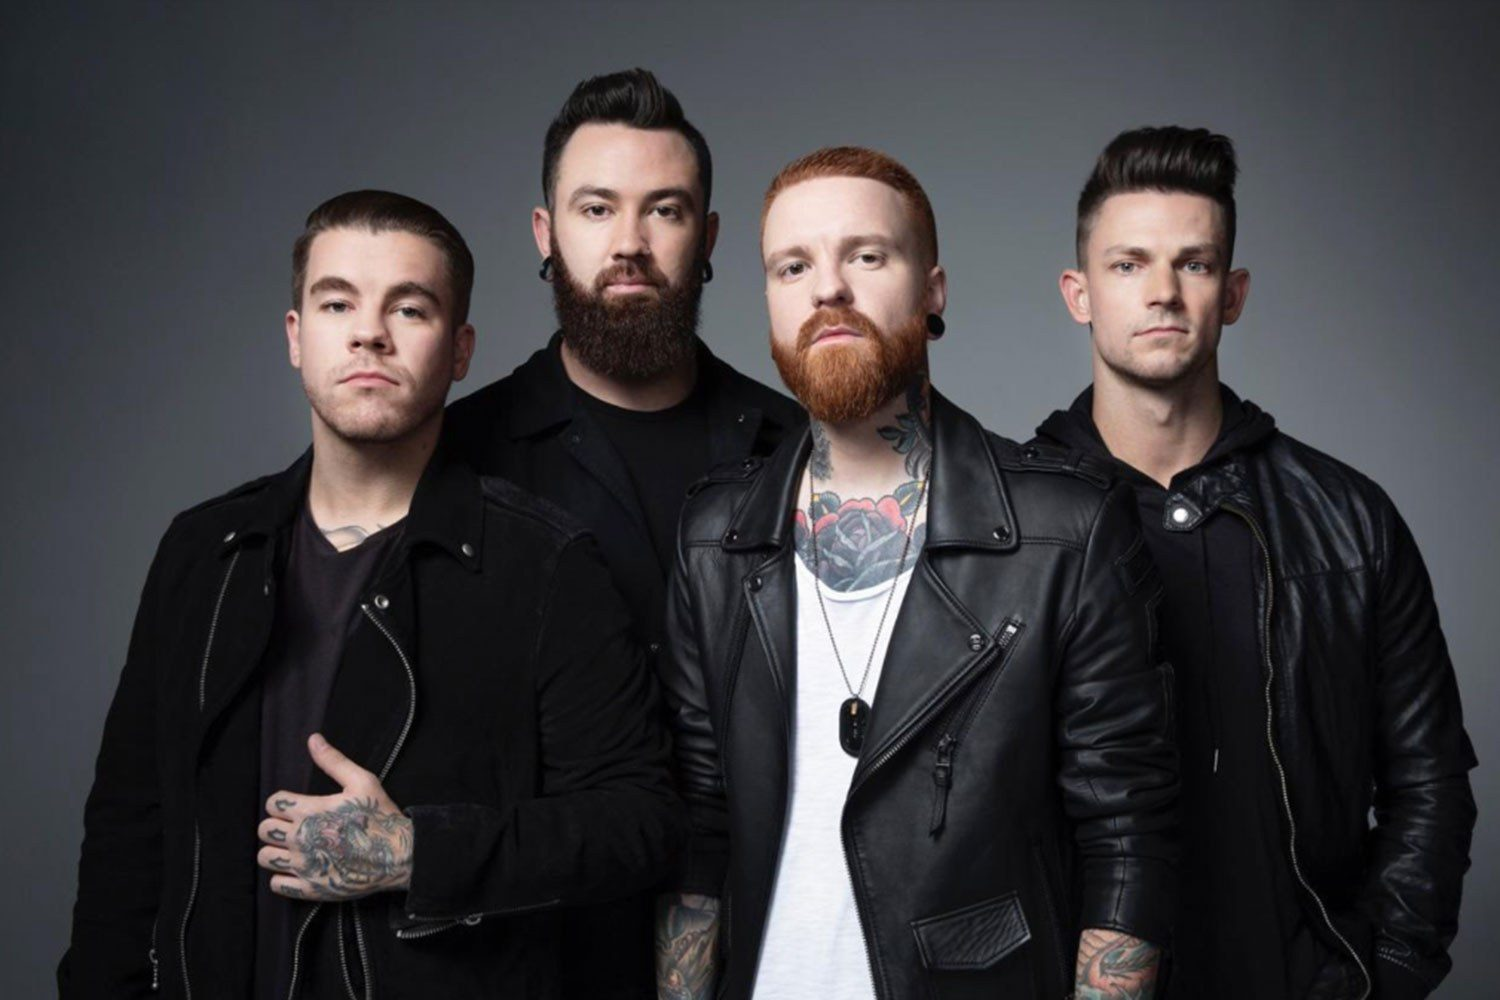 Memphis May Fire are coming over for a UK tour this December